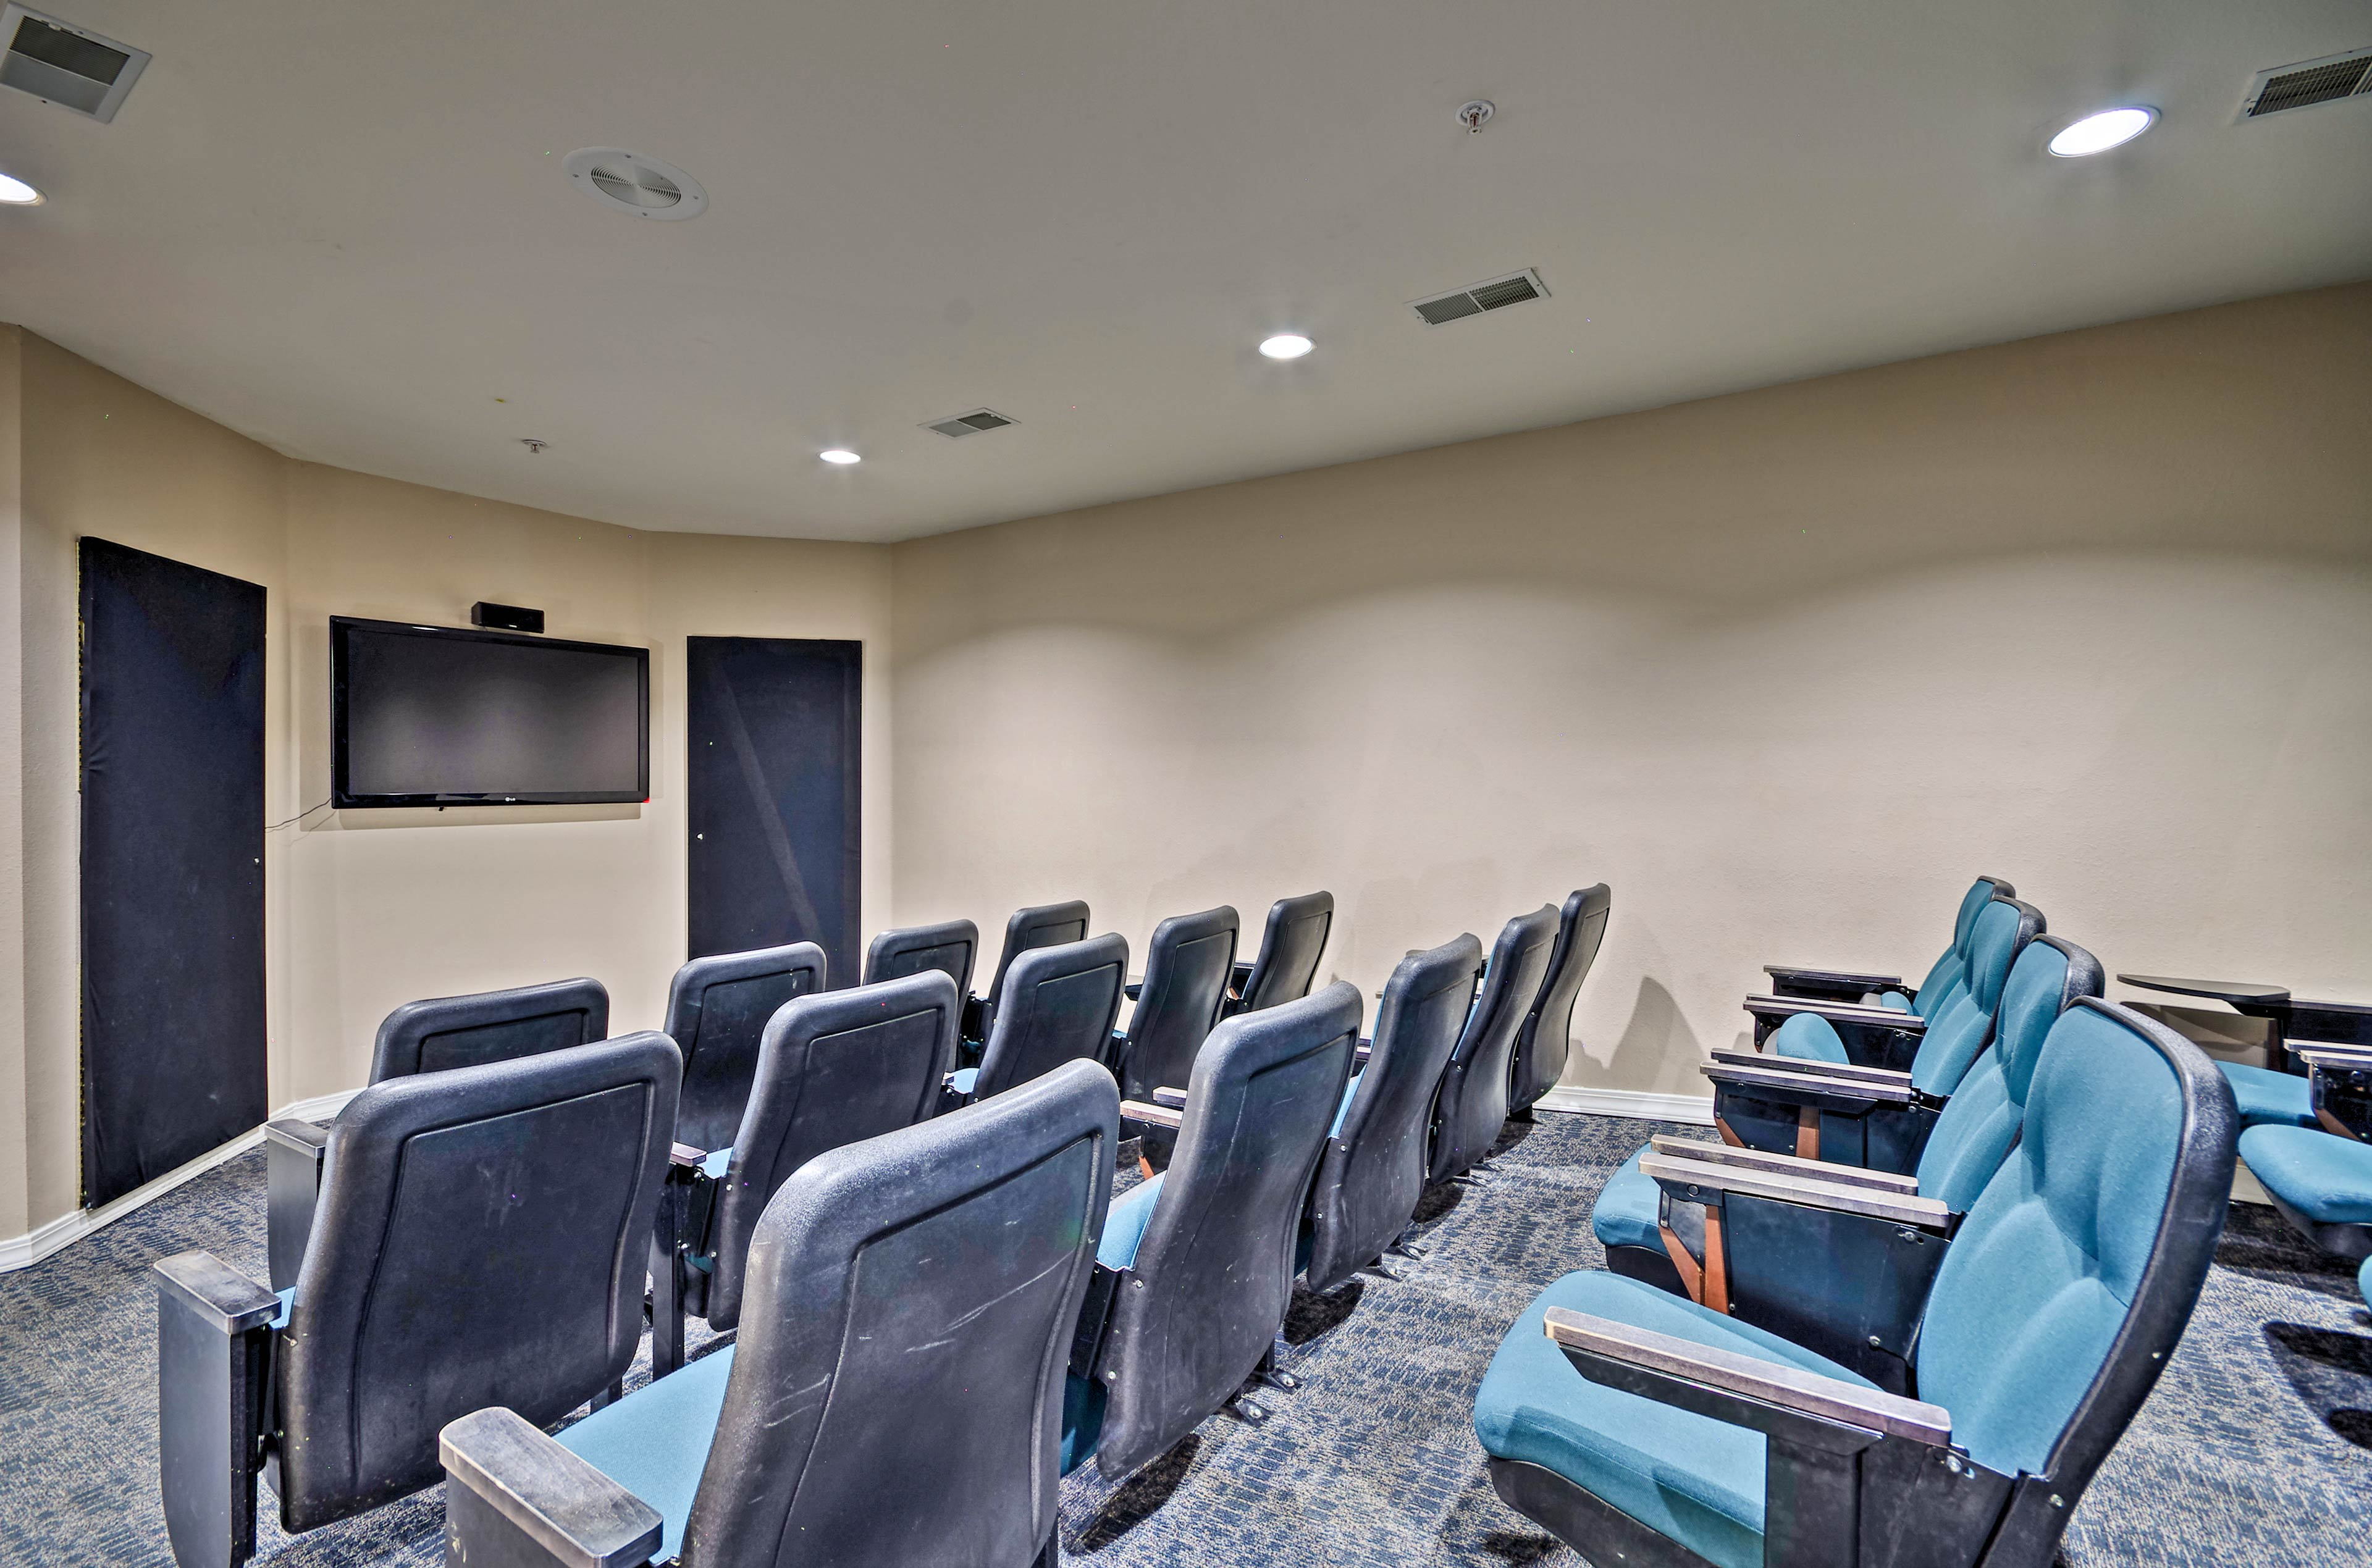 1 of 2 Private Theaters | Can Be Reserved